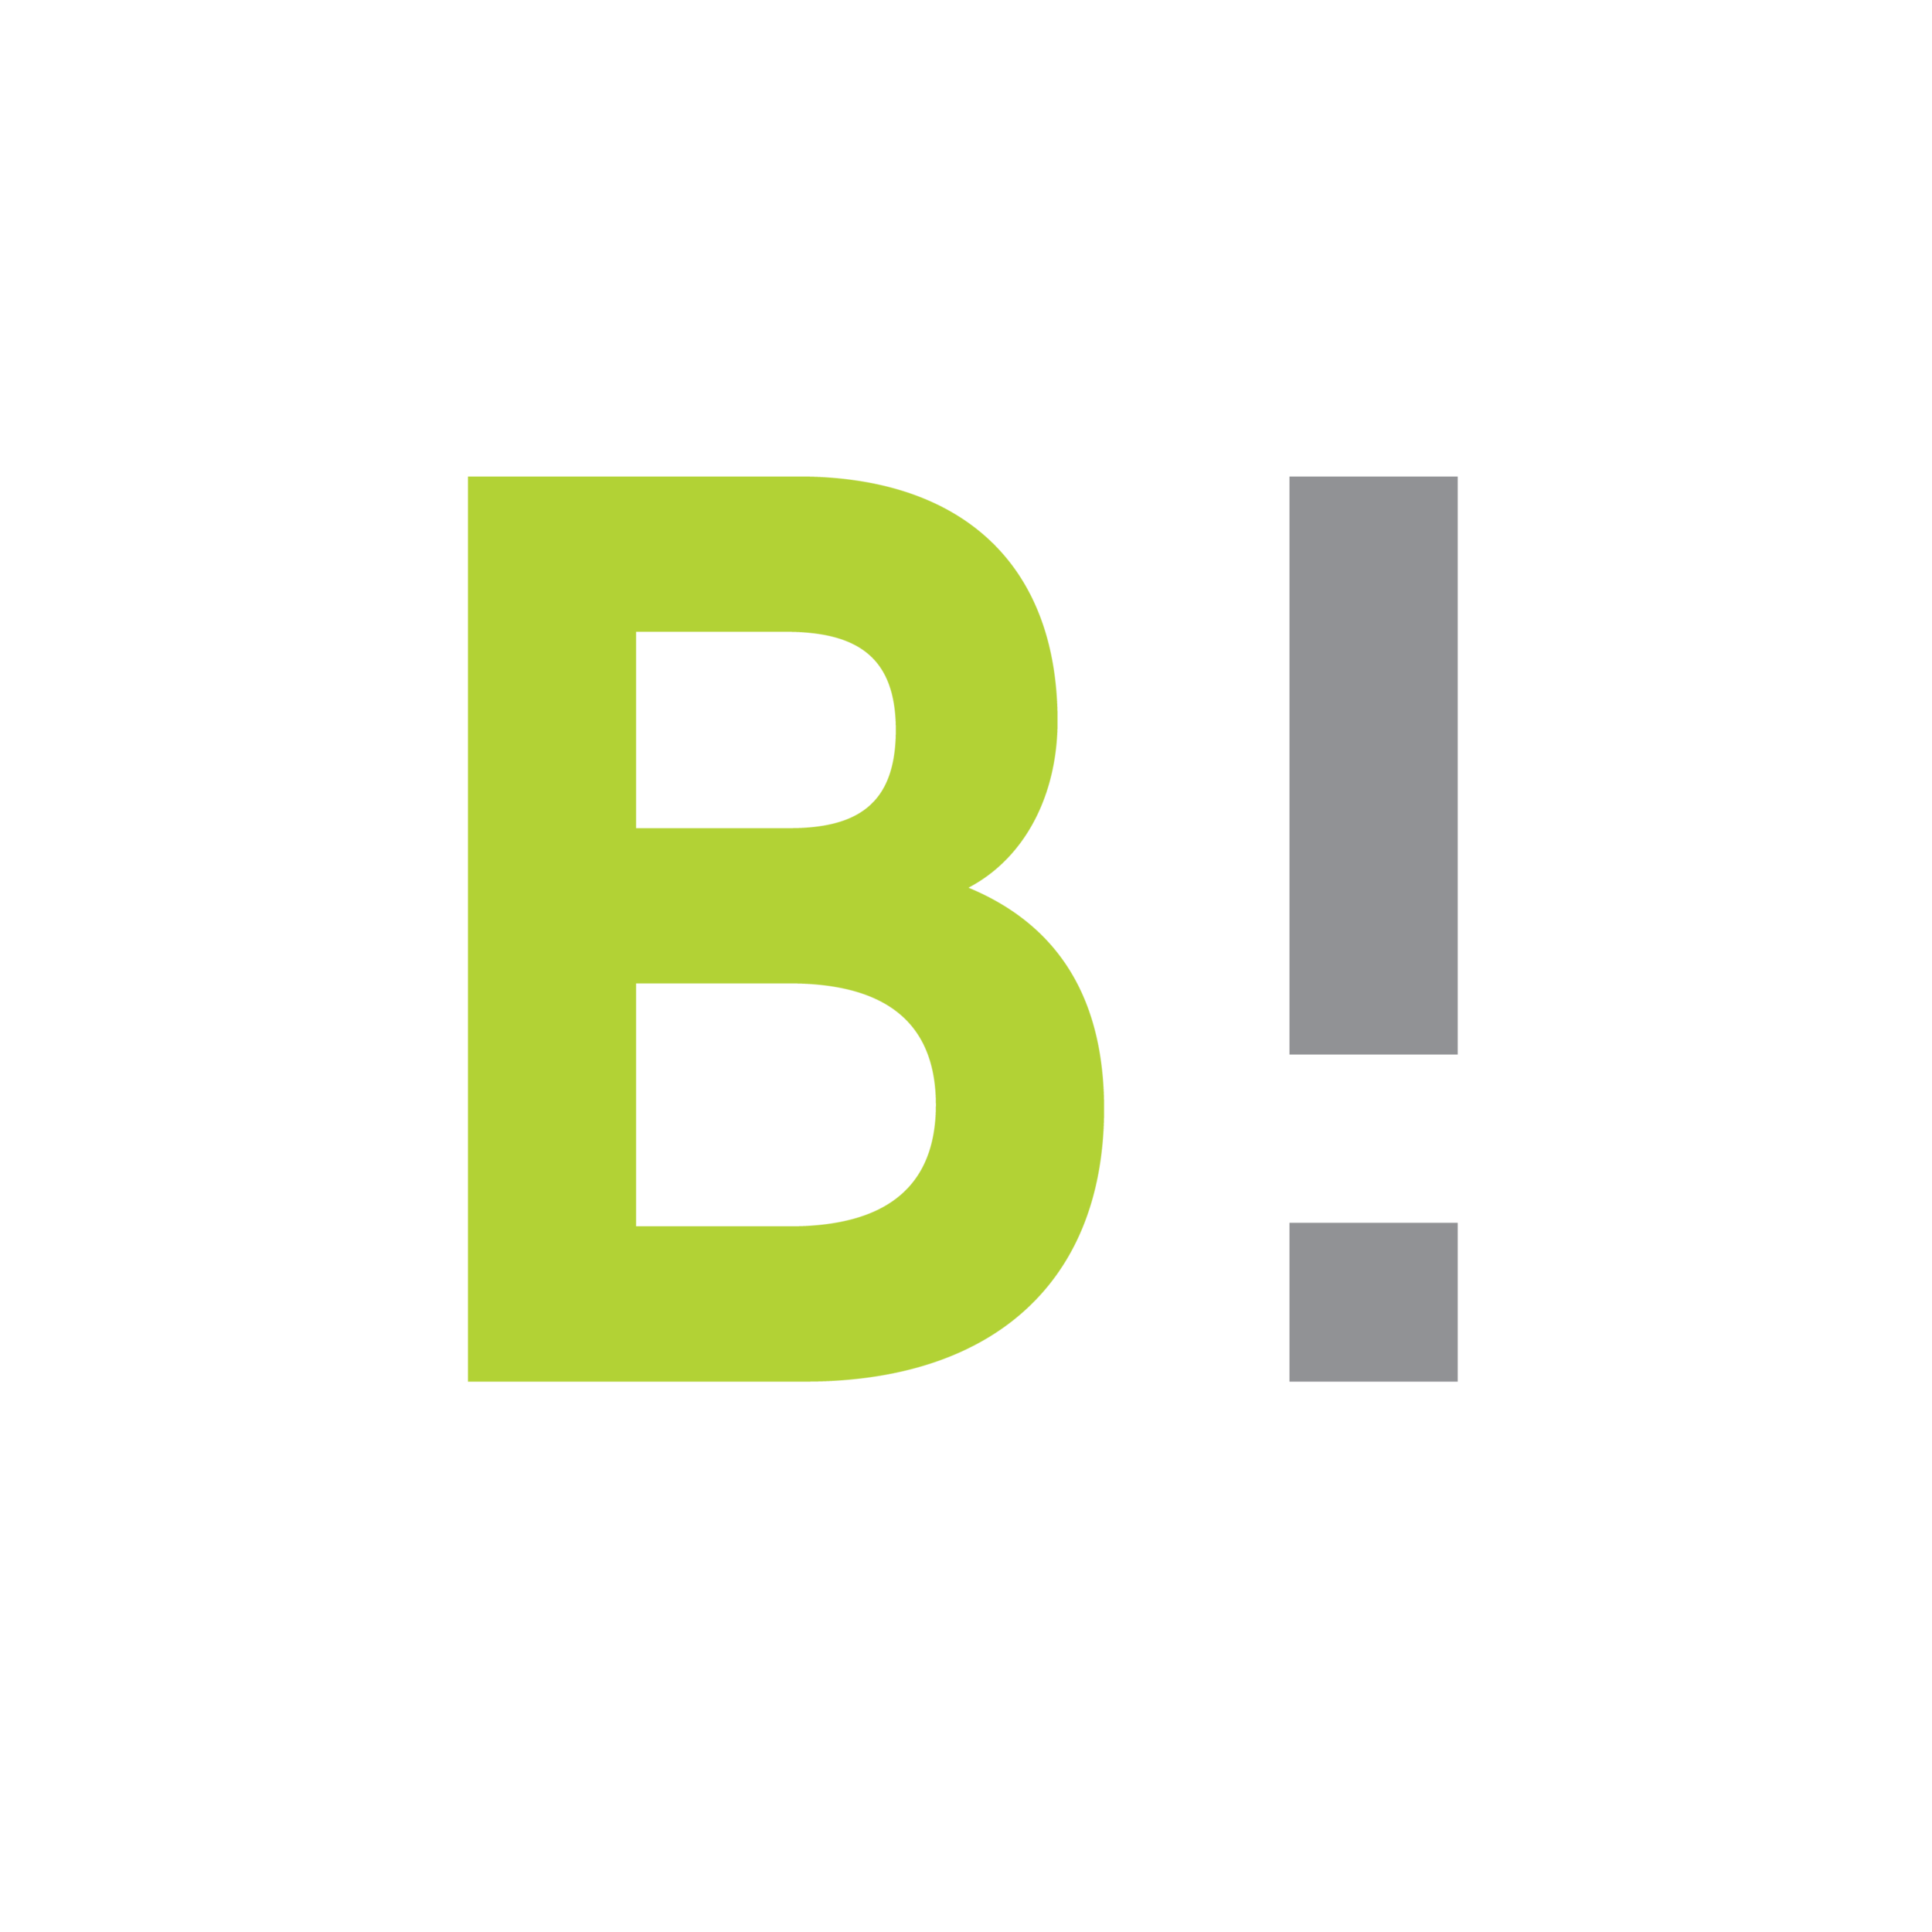 Copy of B! icon 12x12.png